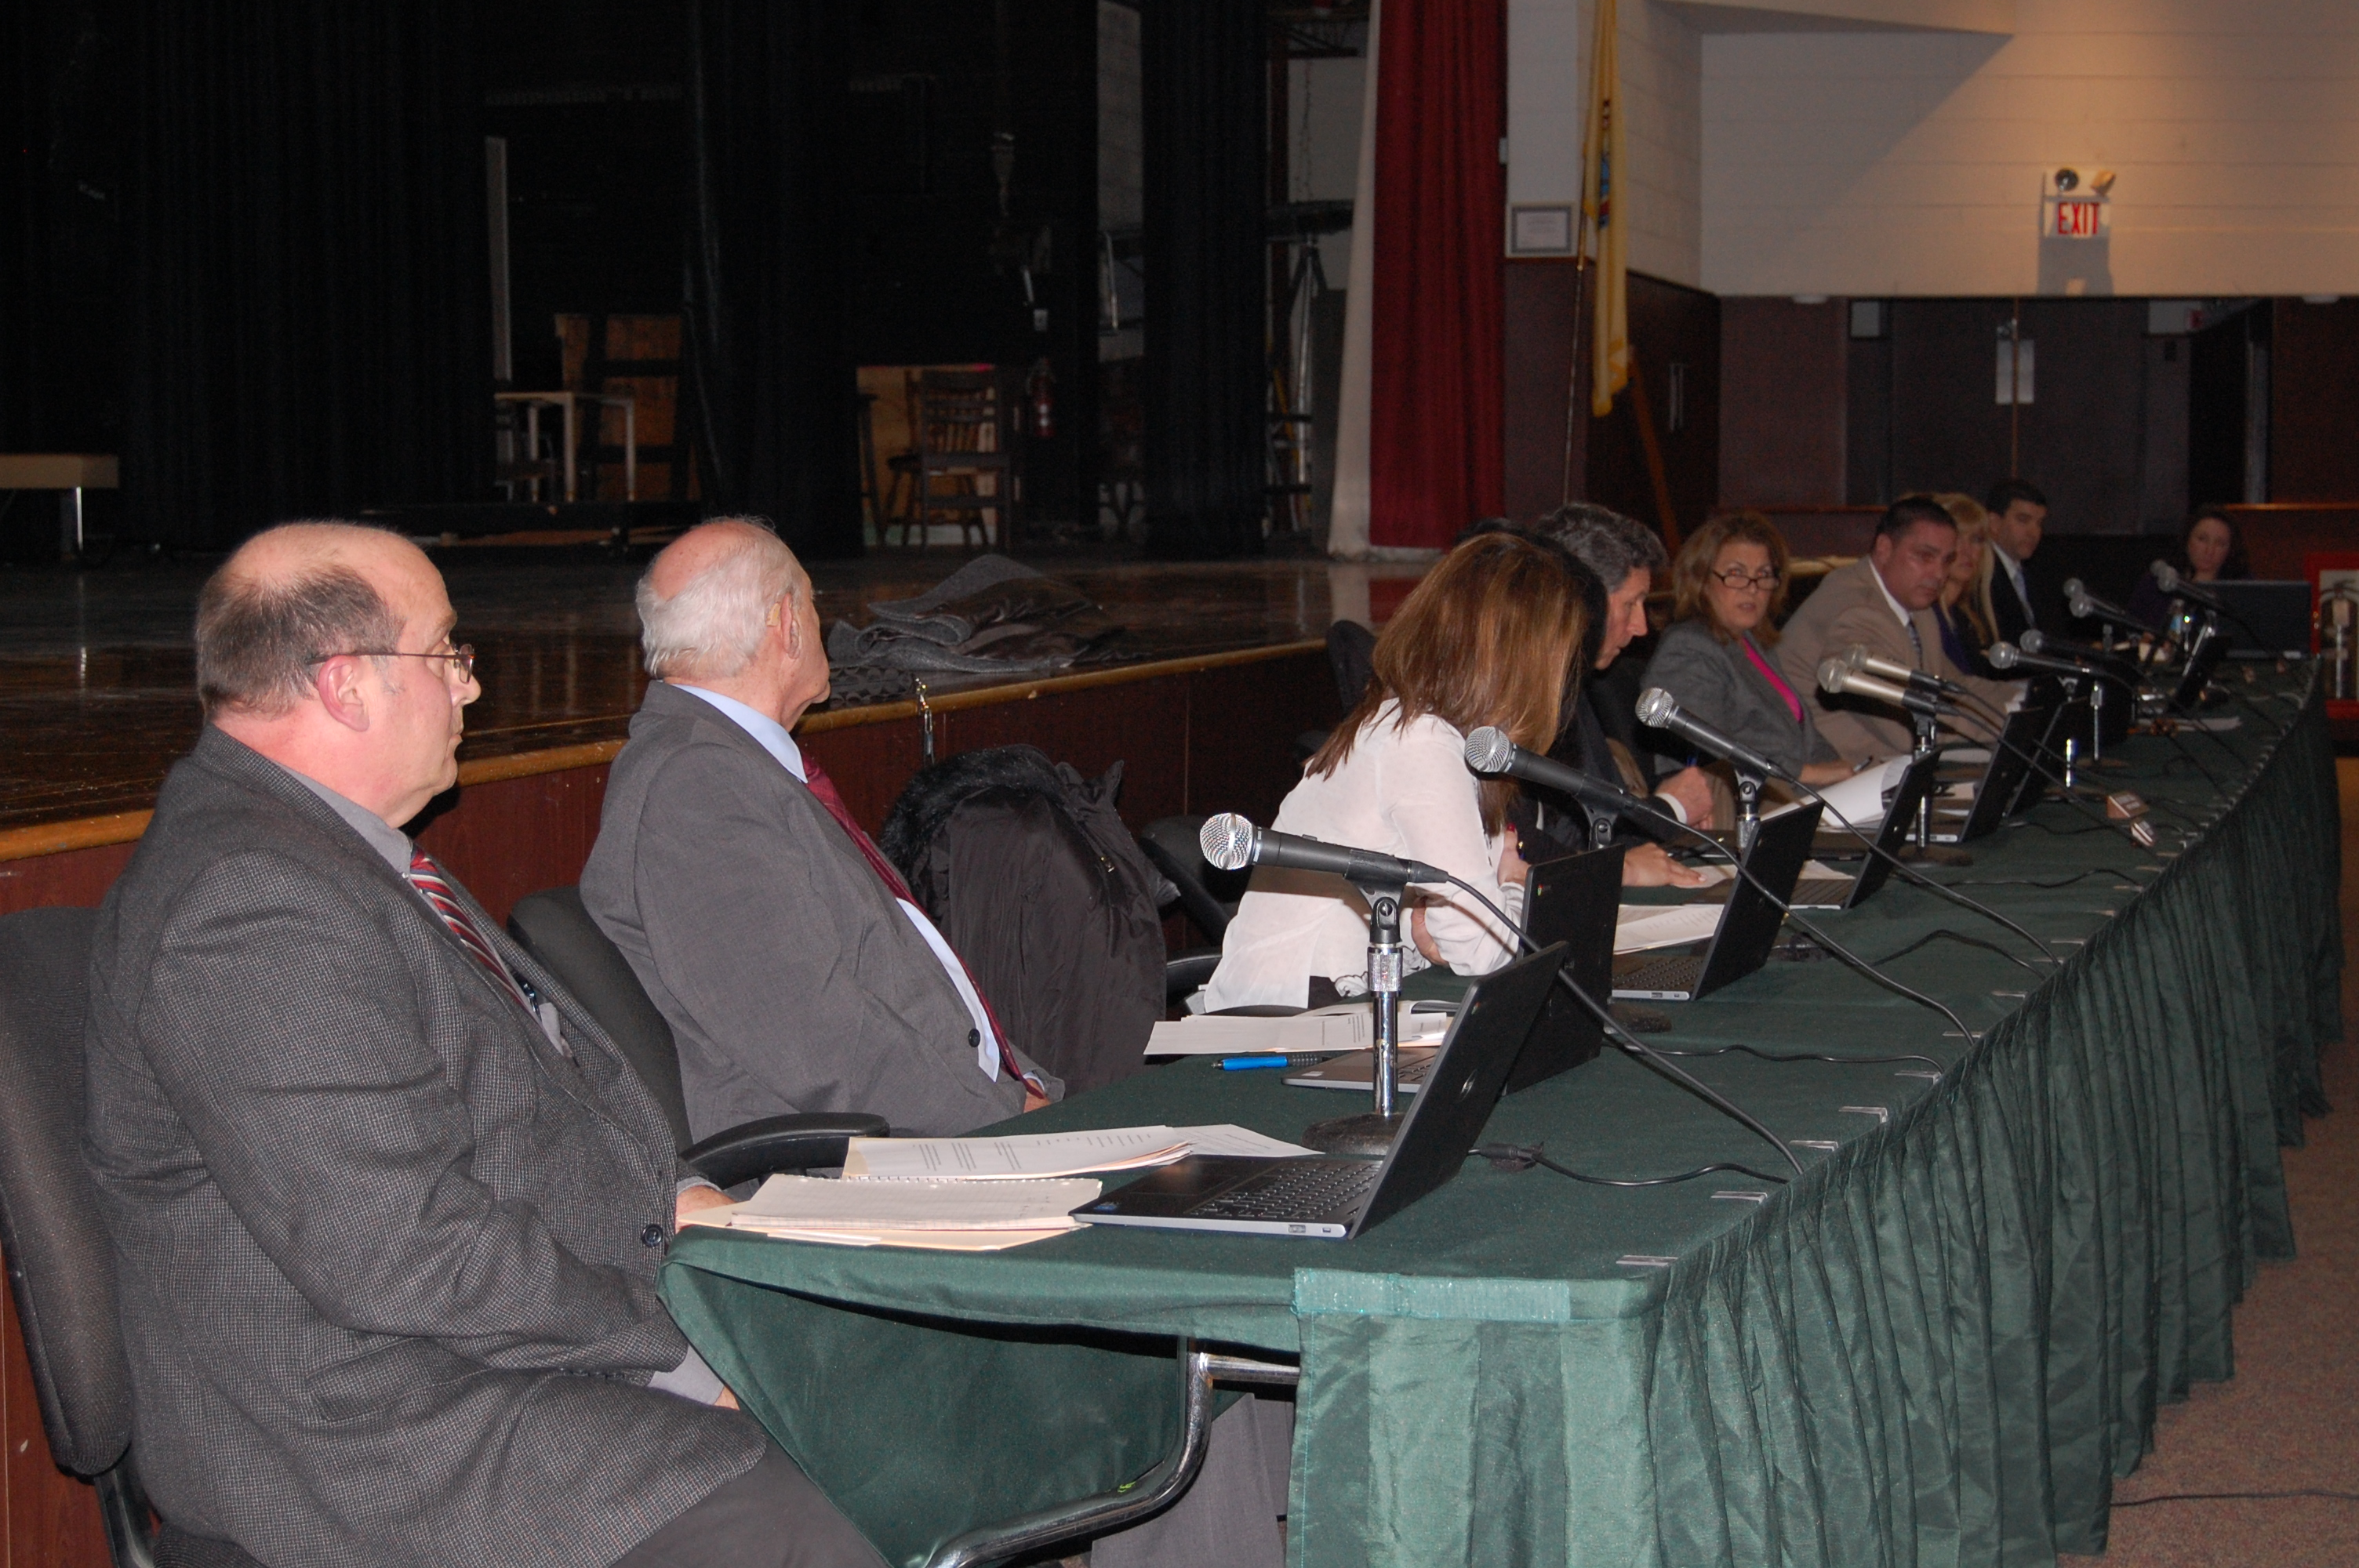 Board of Education members debate at the Jan. 7, 2016 meeting. (Photo: Daniel Nee)